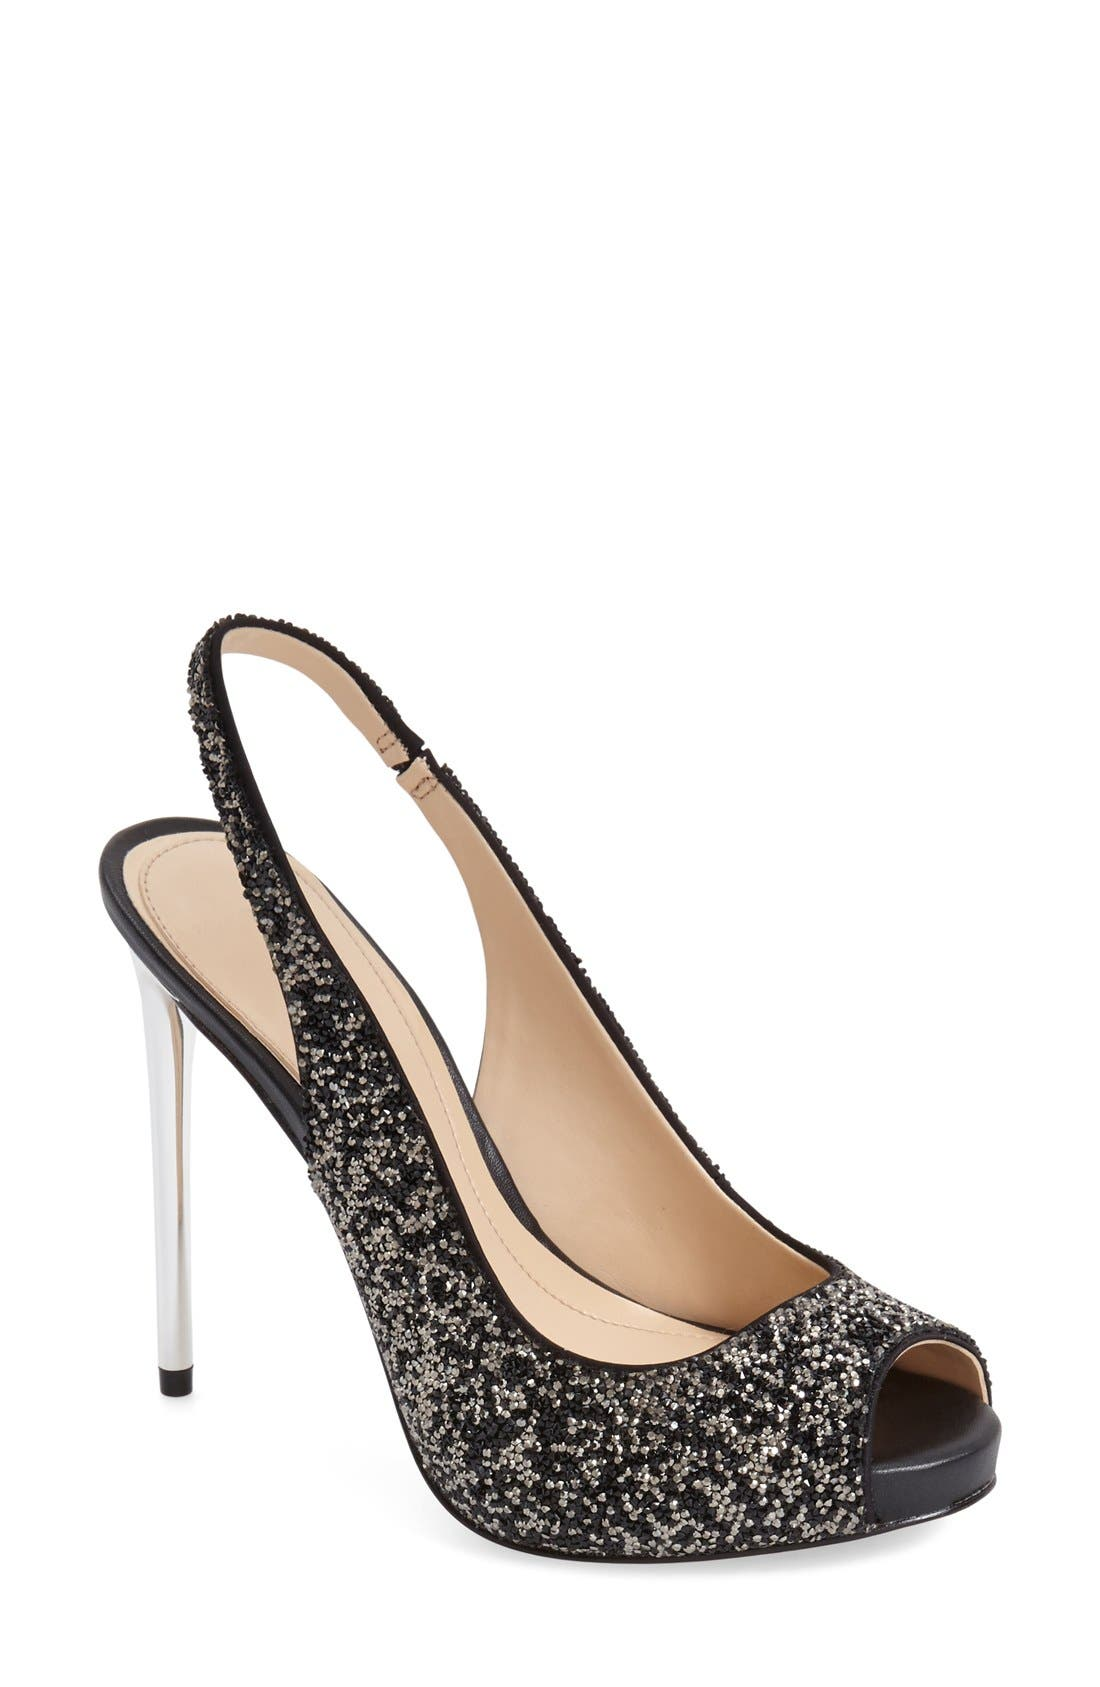 IMAGINE BY VINCE CAMUTO Imagine Vince Camuto Pavi Slingback Peep Toe Pump